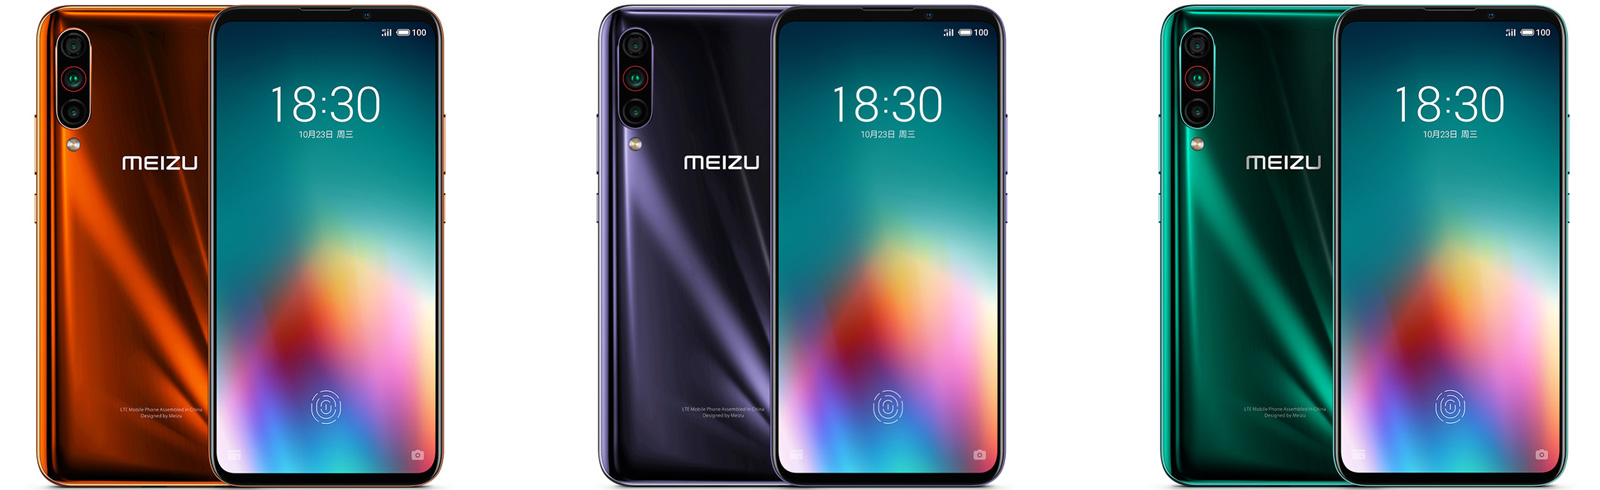 Meizu 16T goes official with a 4500 mAh battery, AMOLED display, triple cameras